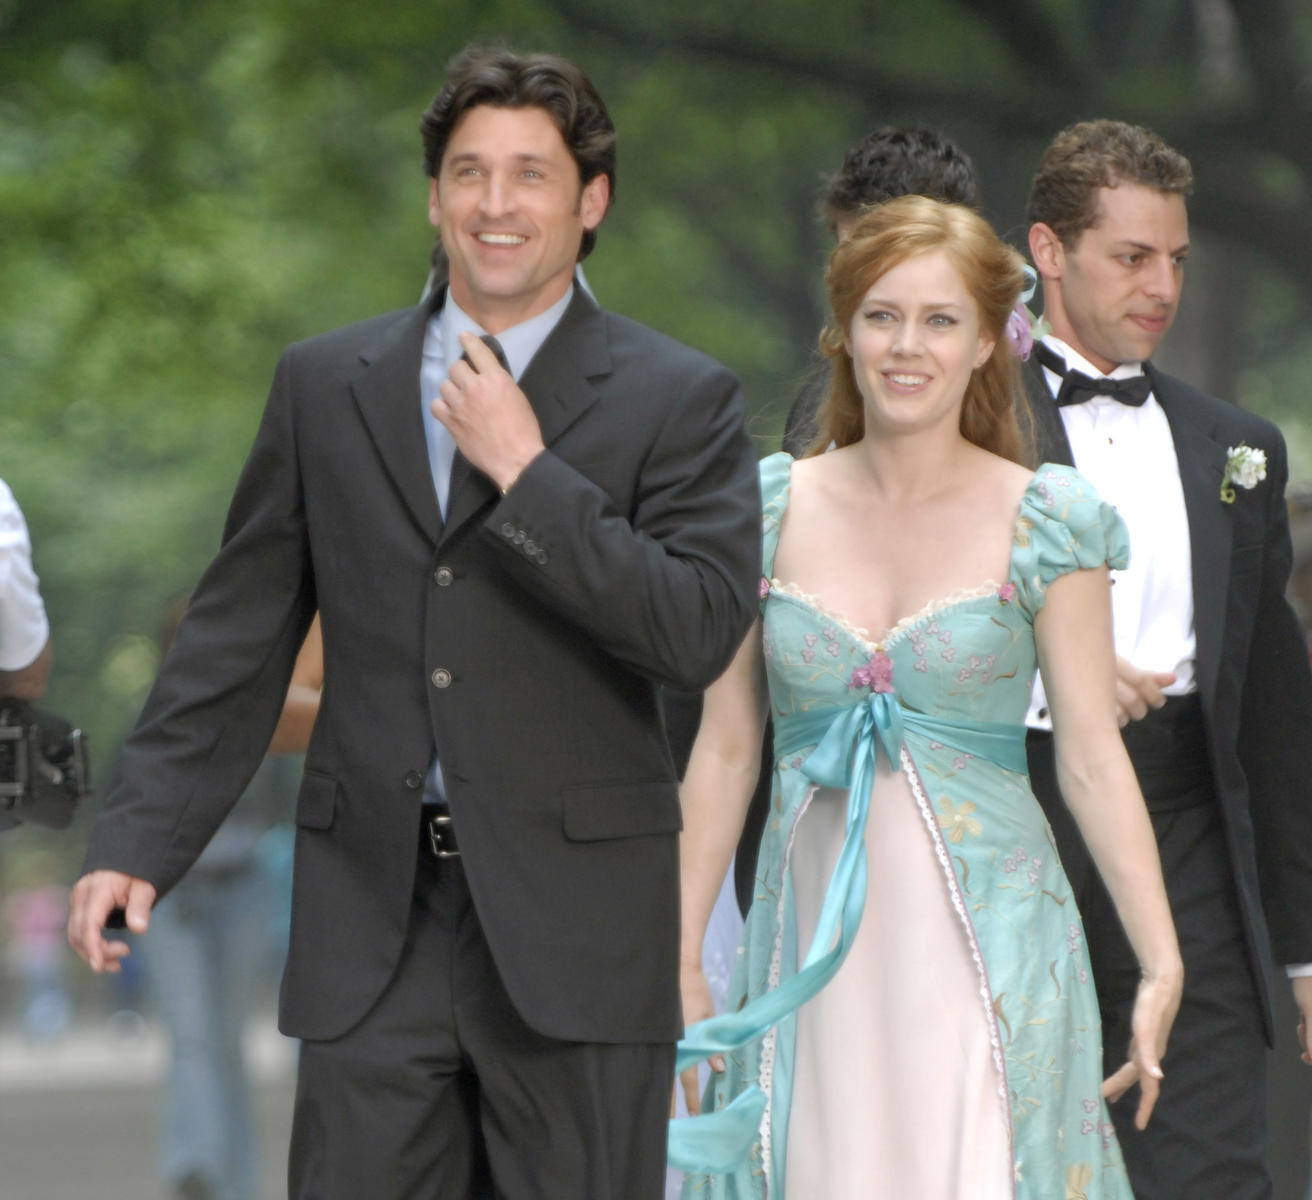 'Enchanted' Sequel 'Disenchanted' Script Close to Completion